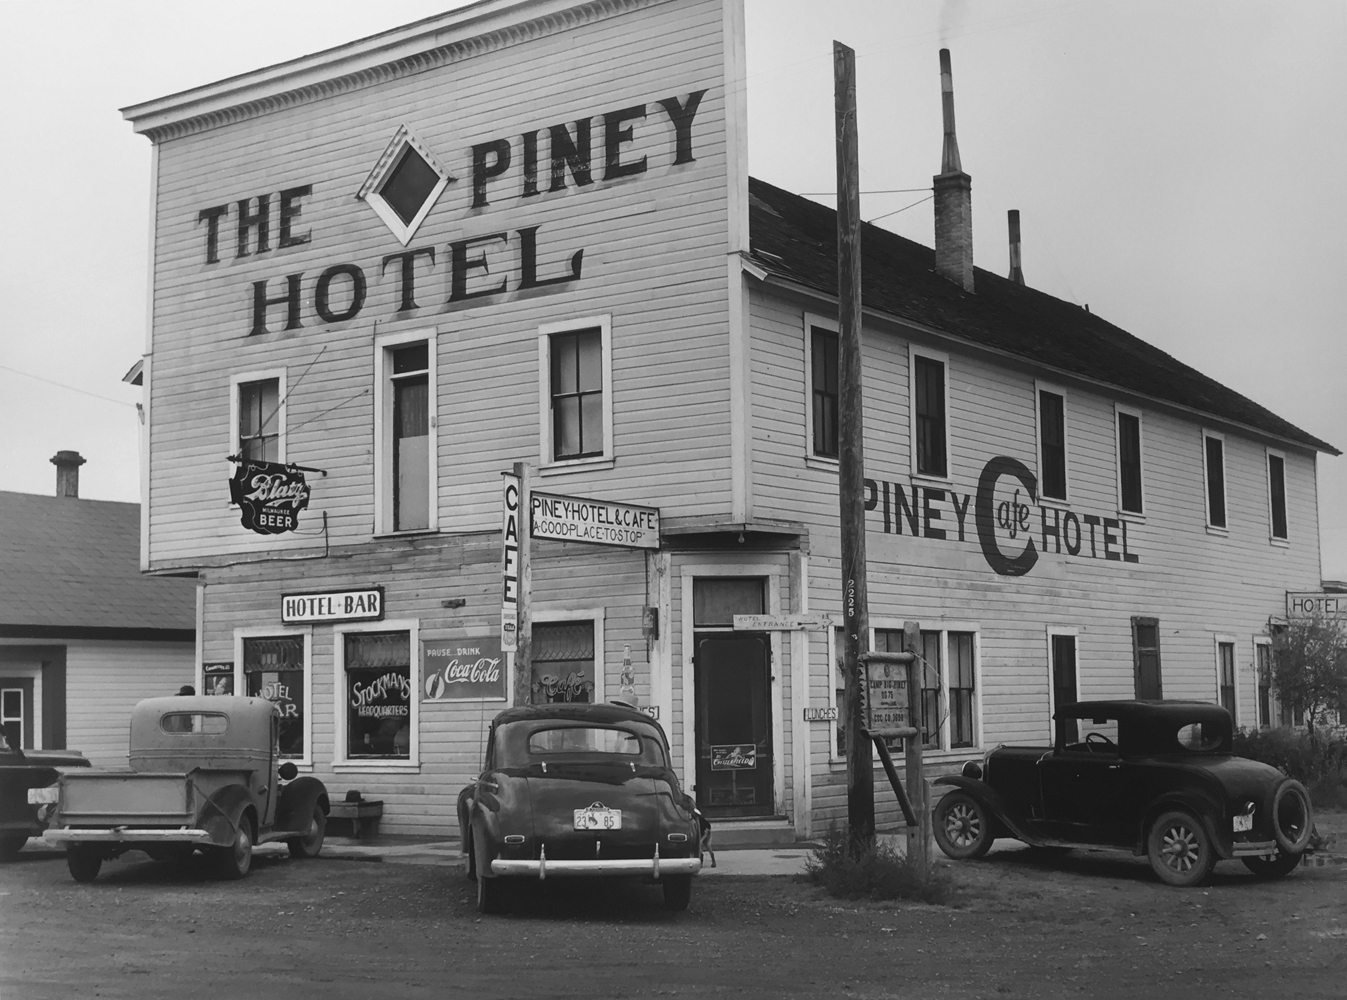 Marion Post Wolcott, Hotel in Big Piney, Wyoming, 1941, gelatin silver print, 11 x 14 inches, price on request